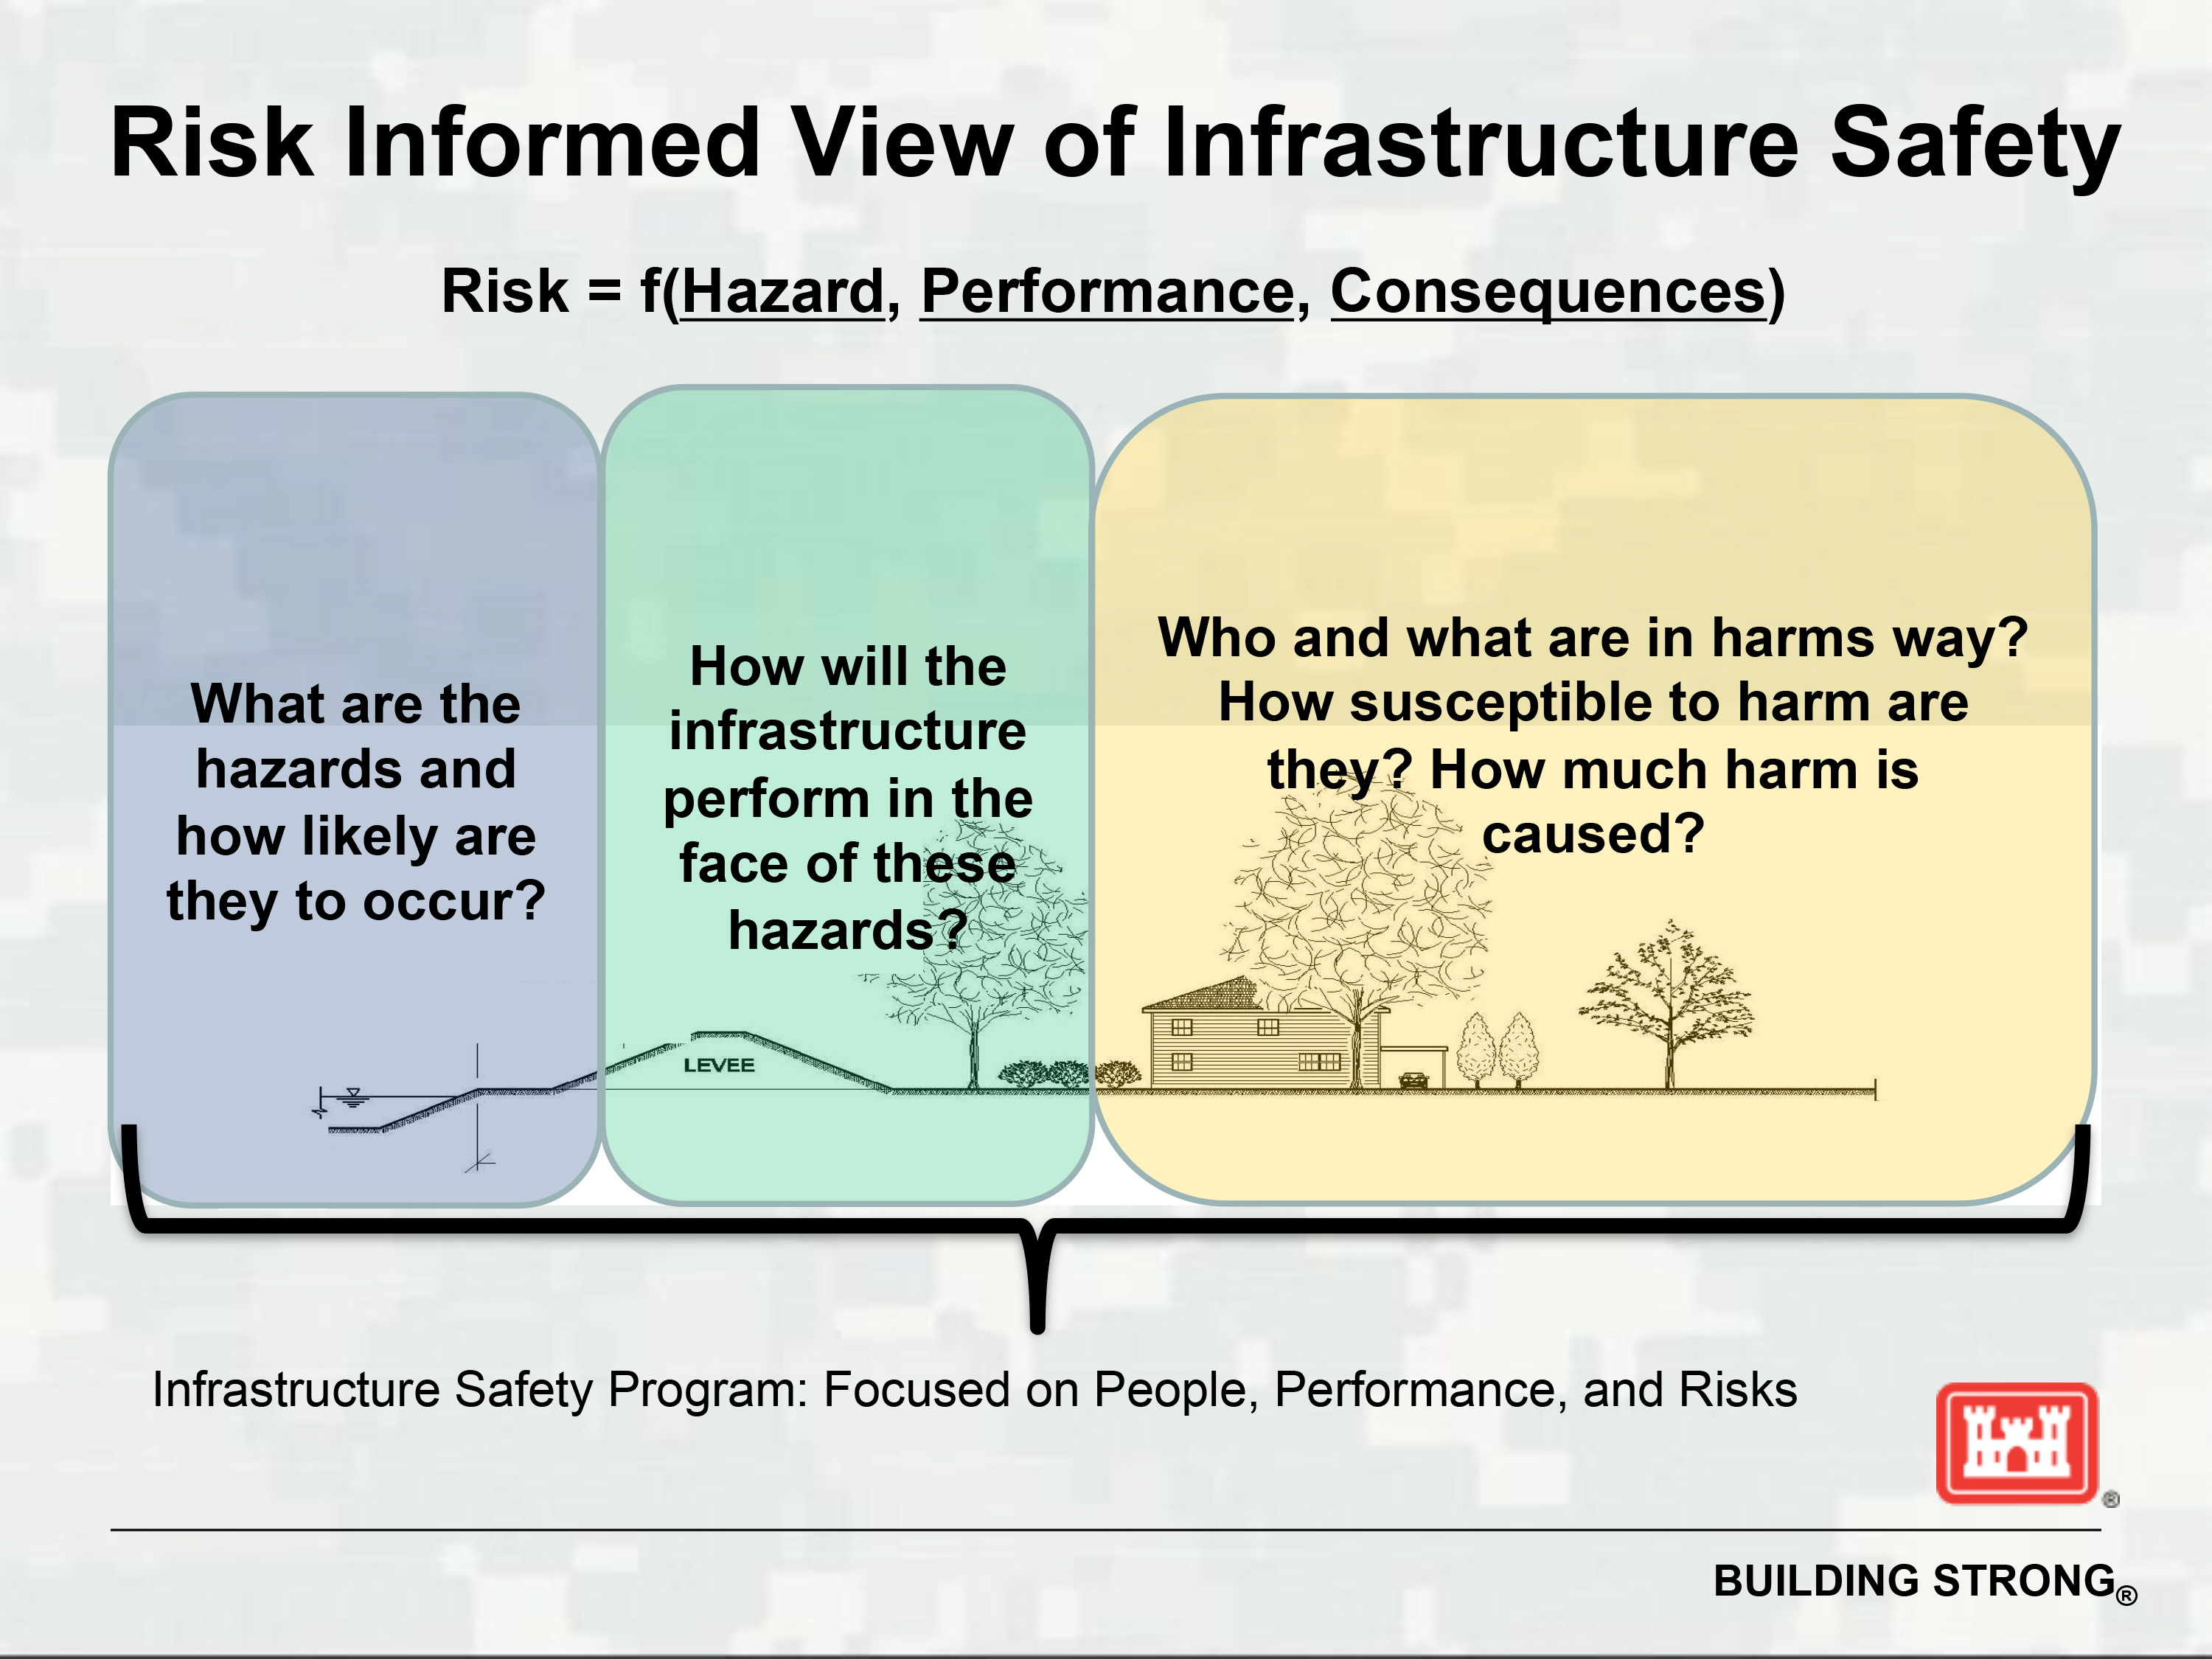 Risk-informed view of infrastructure safety